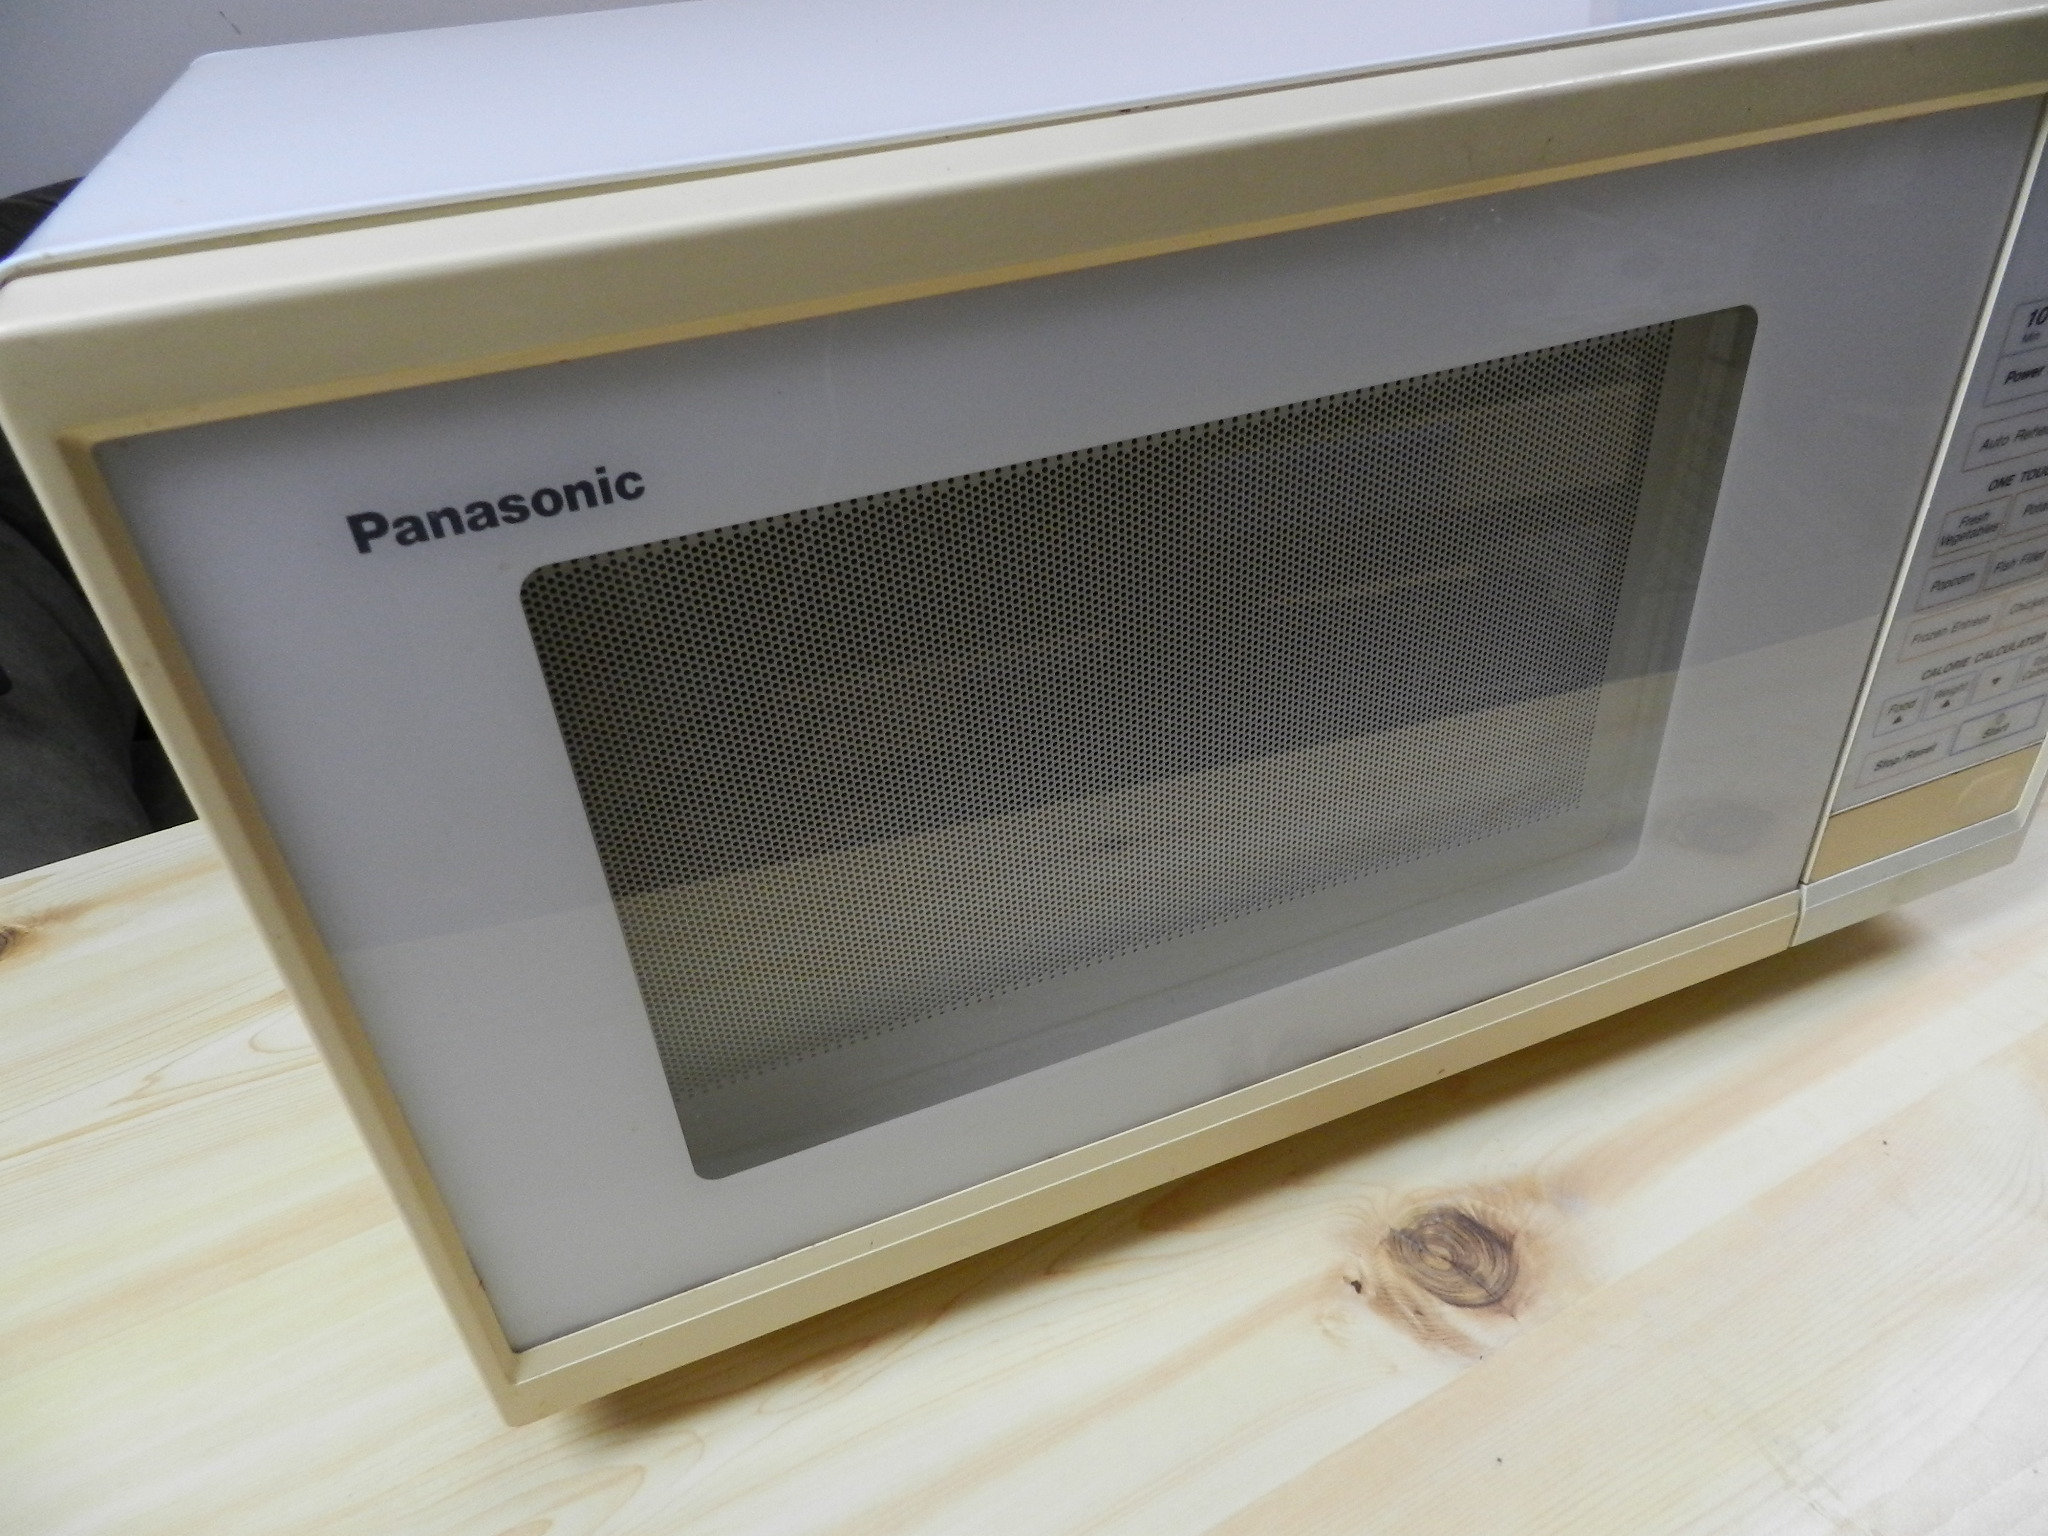 $19 - Panasonic Counter Top Microwave Oven - 800W